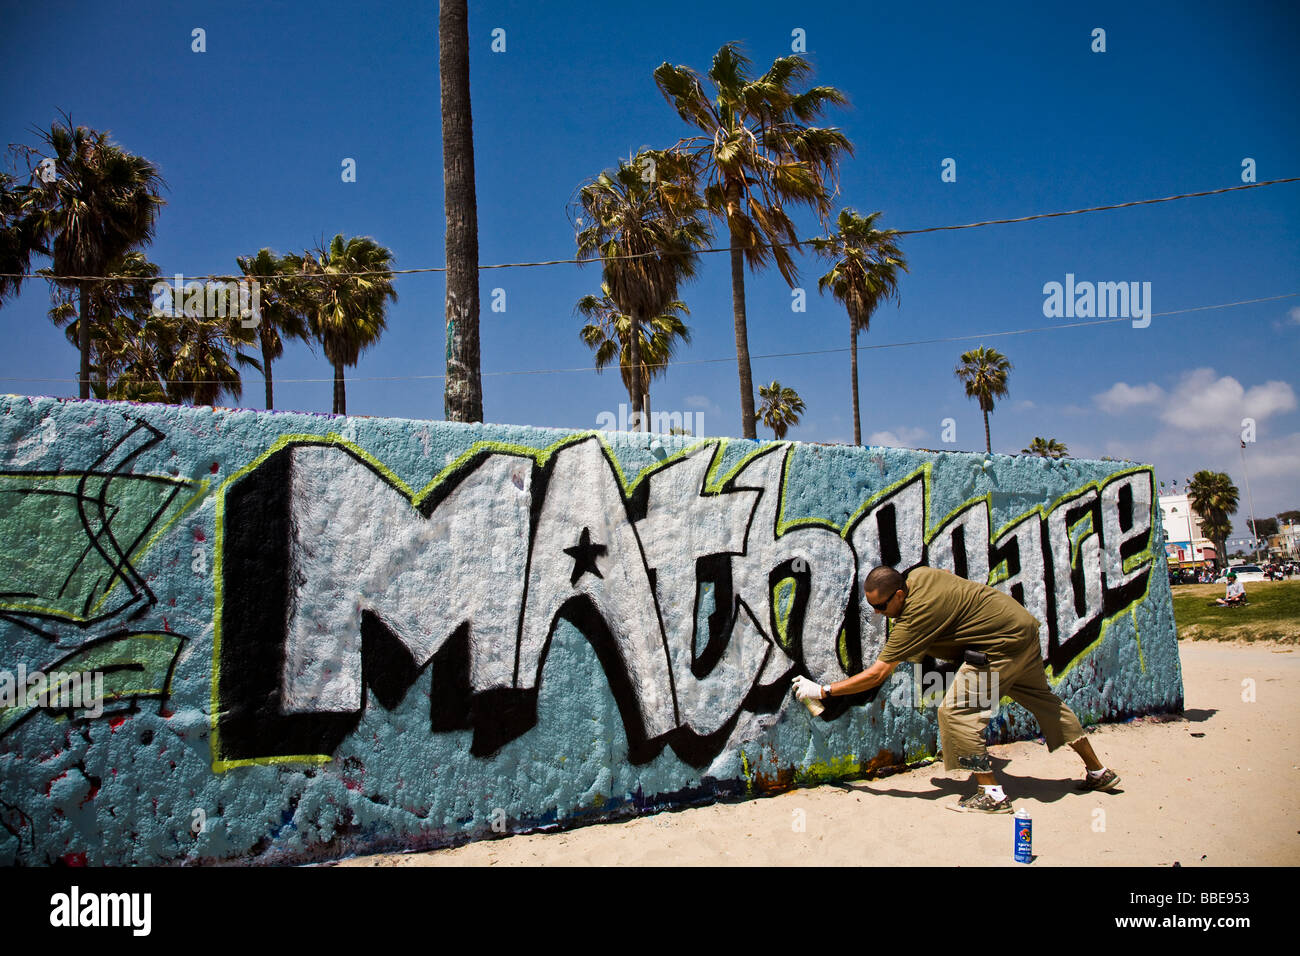 Graffiti-Künstler Venice Beach Los Angeles County Kalifornien Stockbild